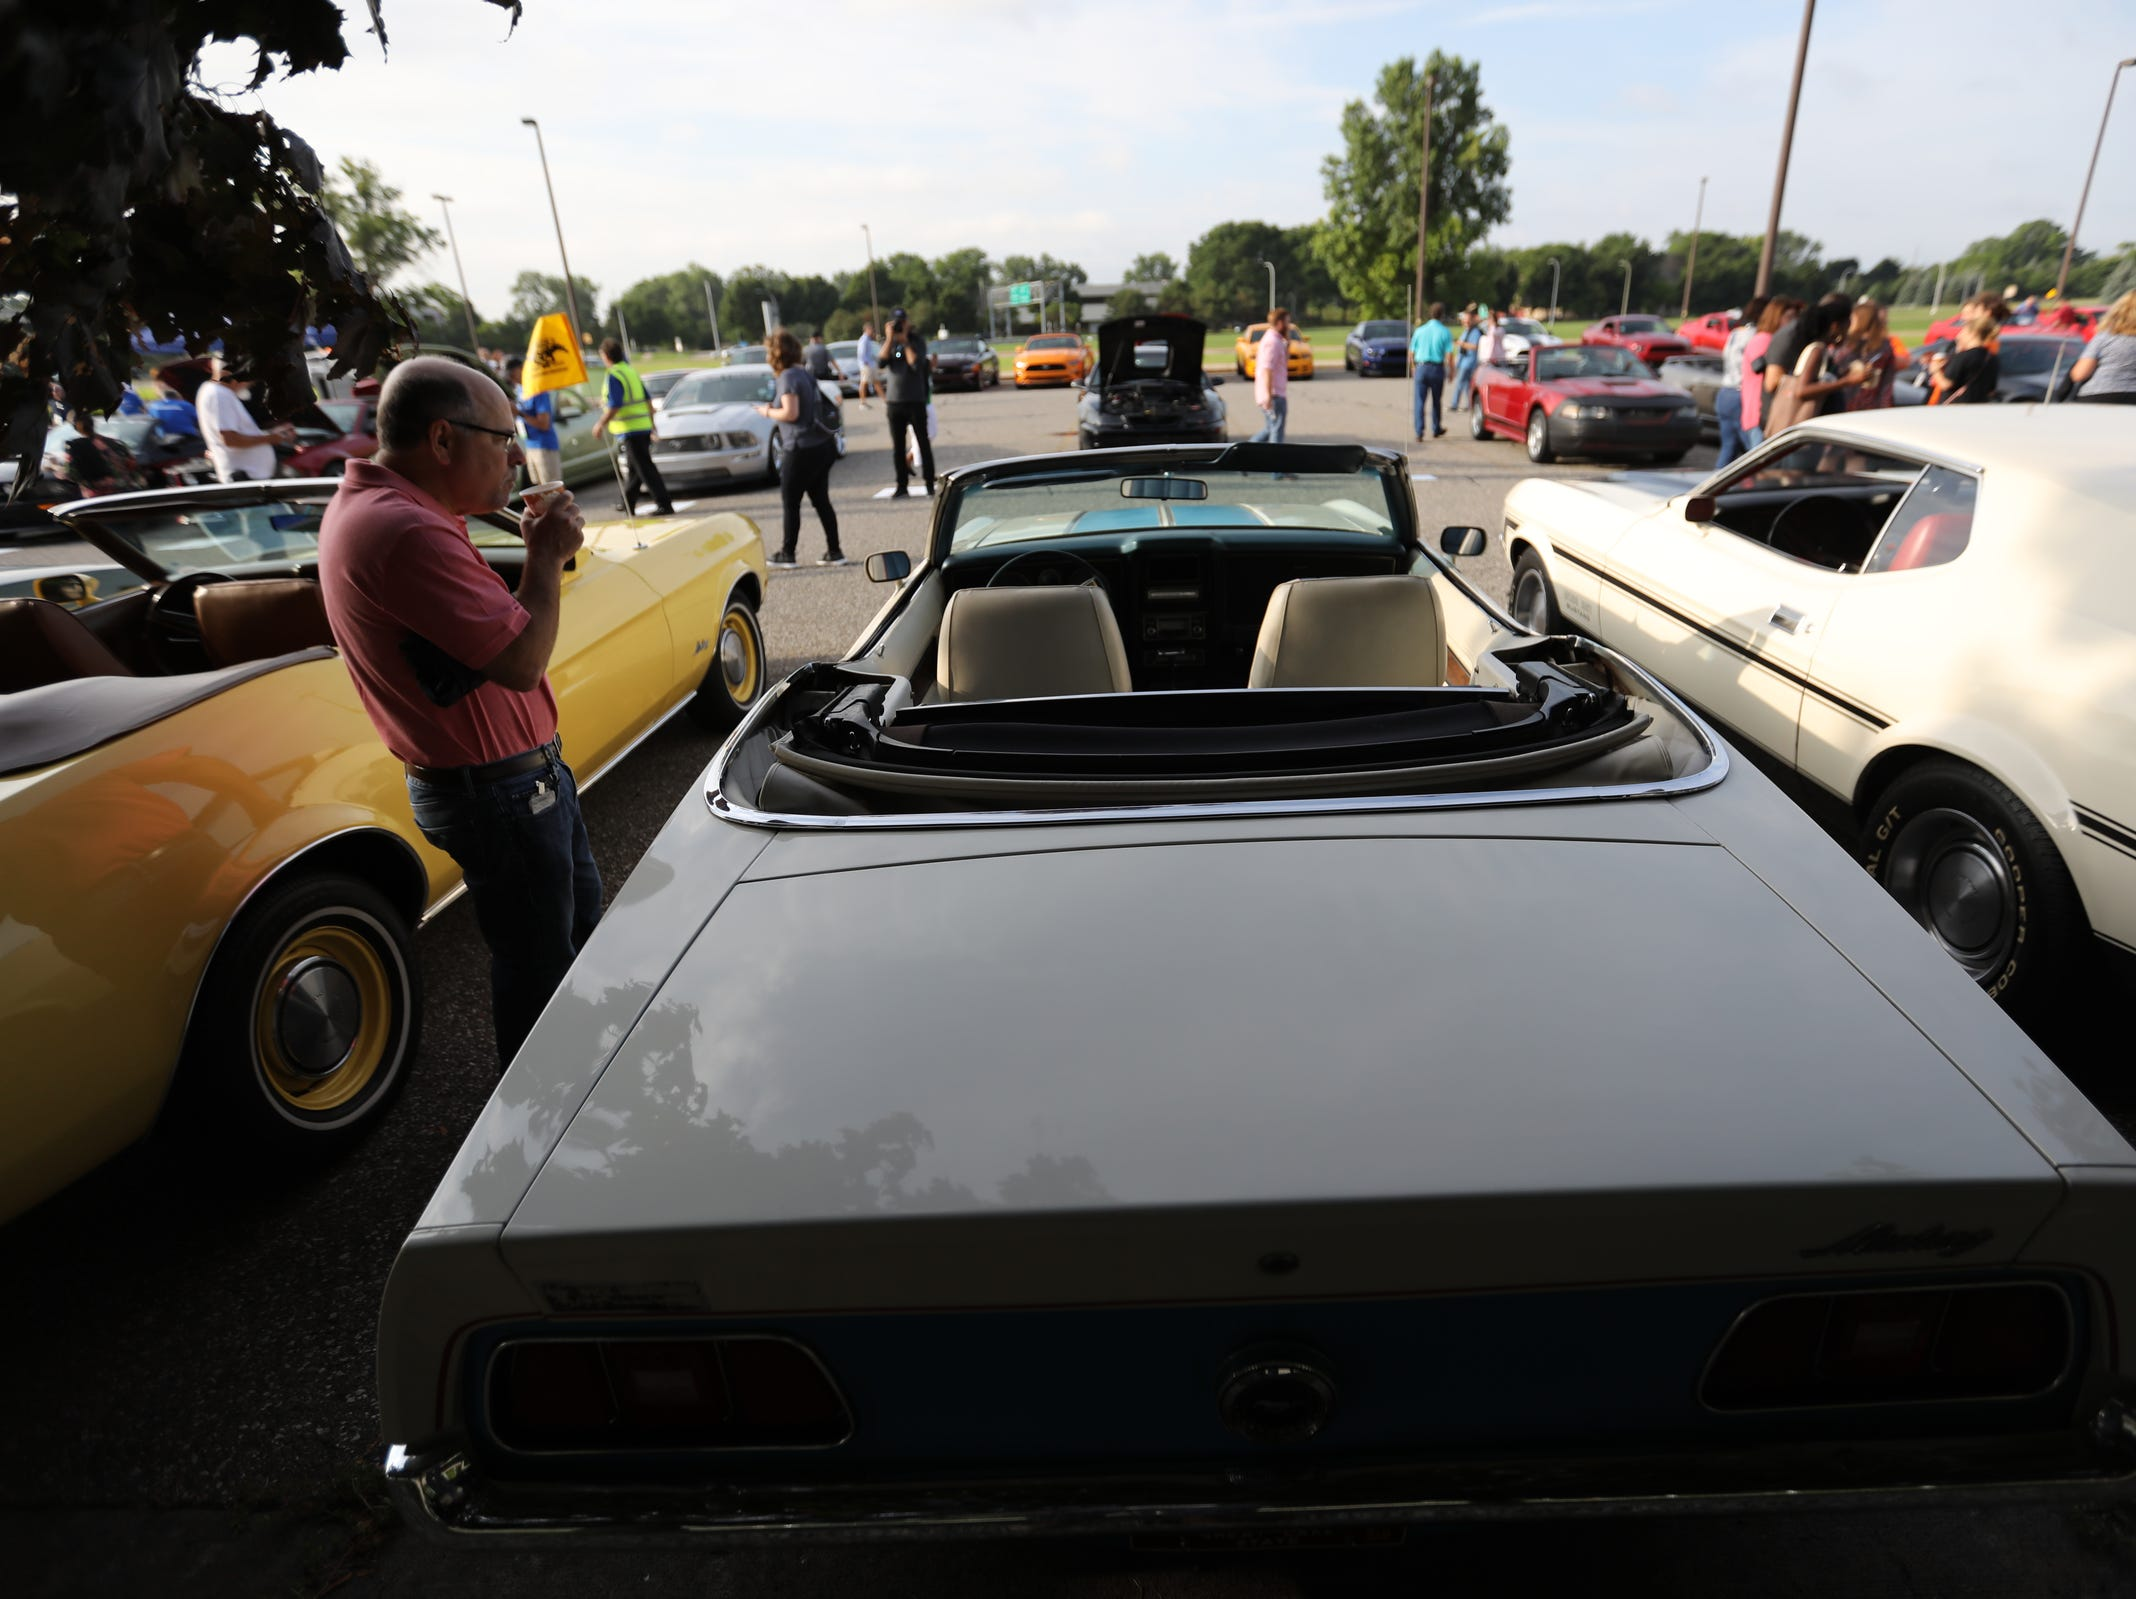 A 1972 Ford Mustang convertible is admired, during a Ford event celebrating the 10,000,000 Mustang built at the Ford Motor Company World Headquarters in Dearborn on Wed., Aug 8, 2018.